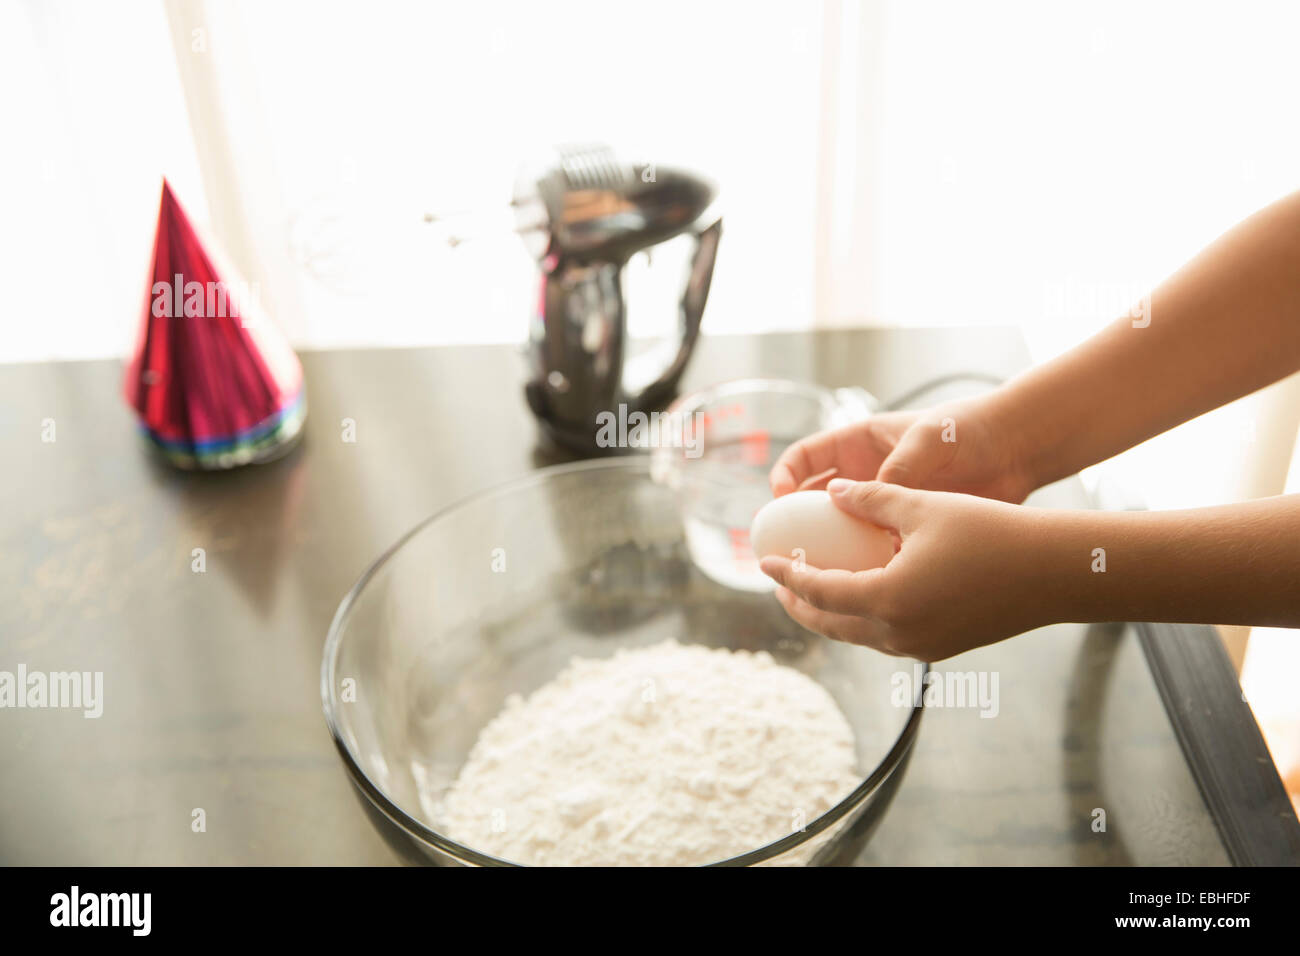 Hand holding egg over mixing bowl on table - Stock Image